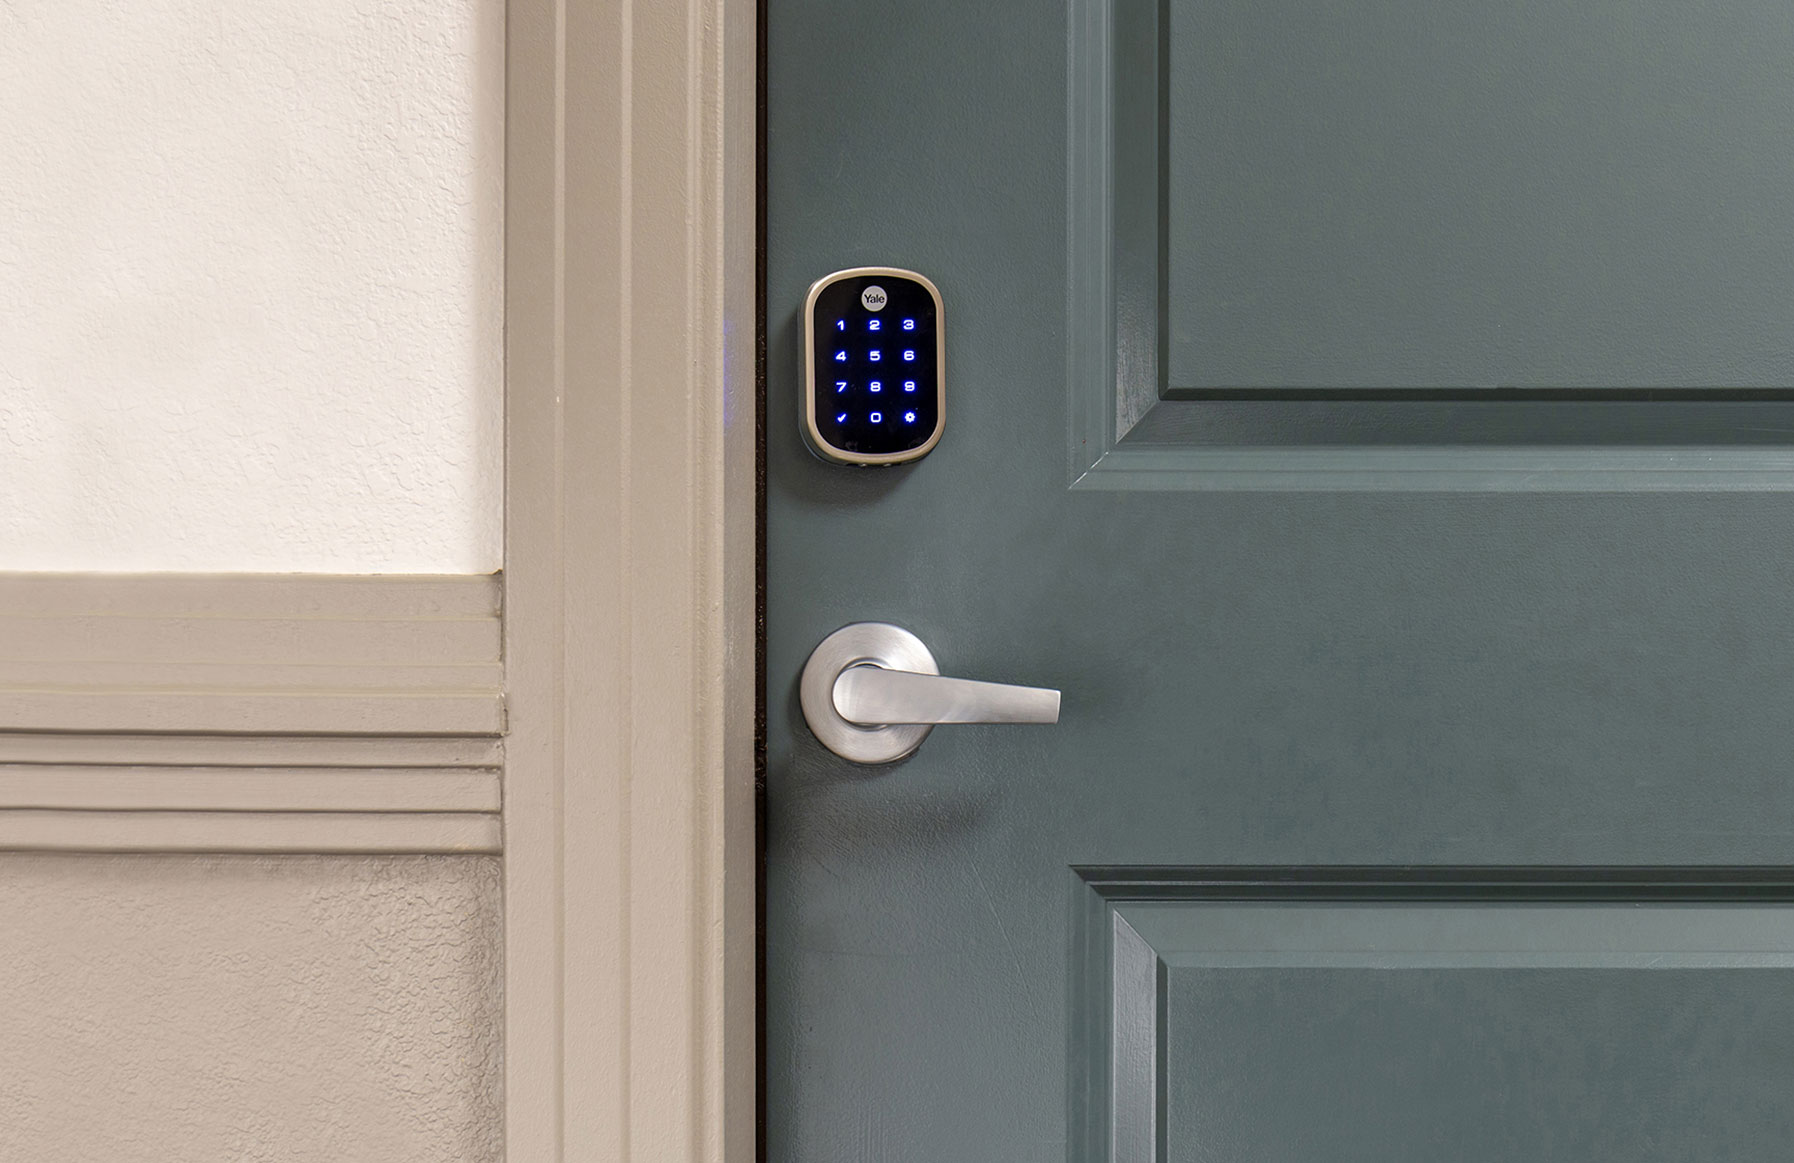 707 Leahy - Redwood City, CA - Smart Locks Feature